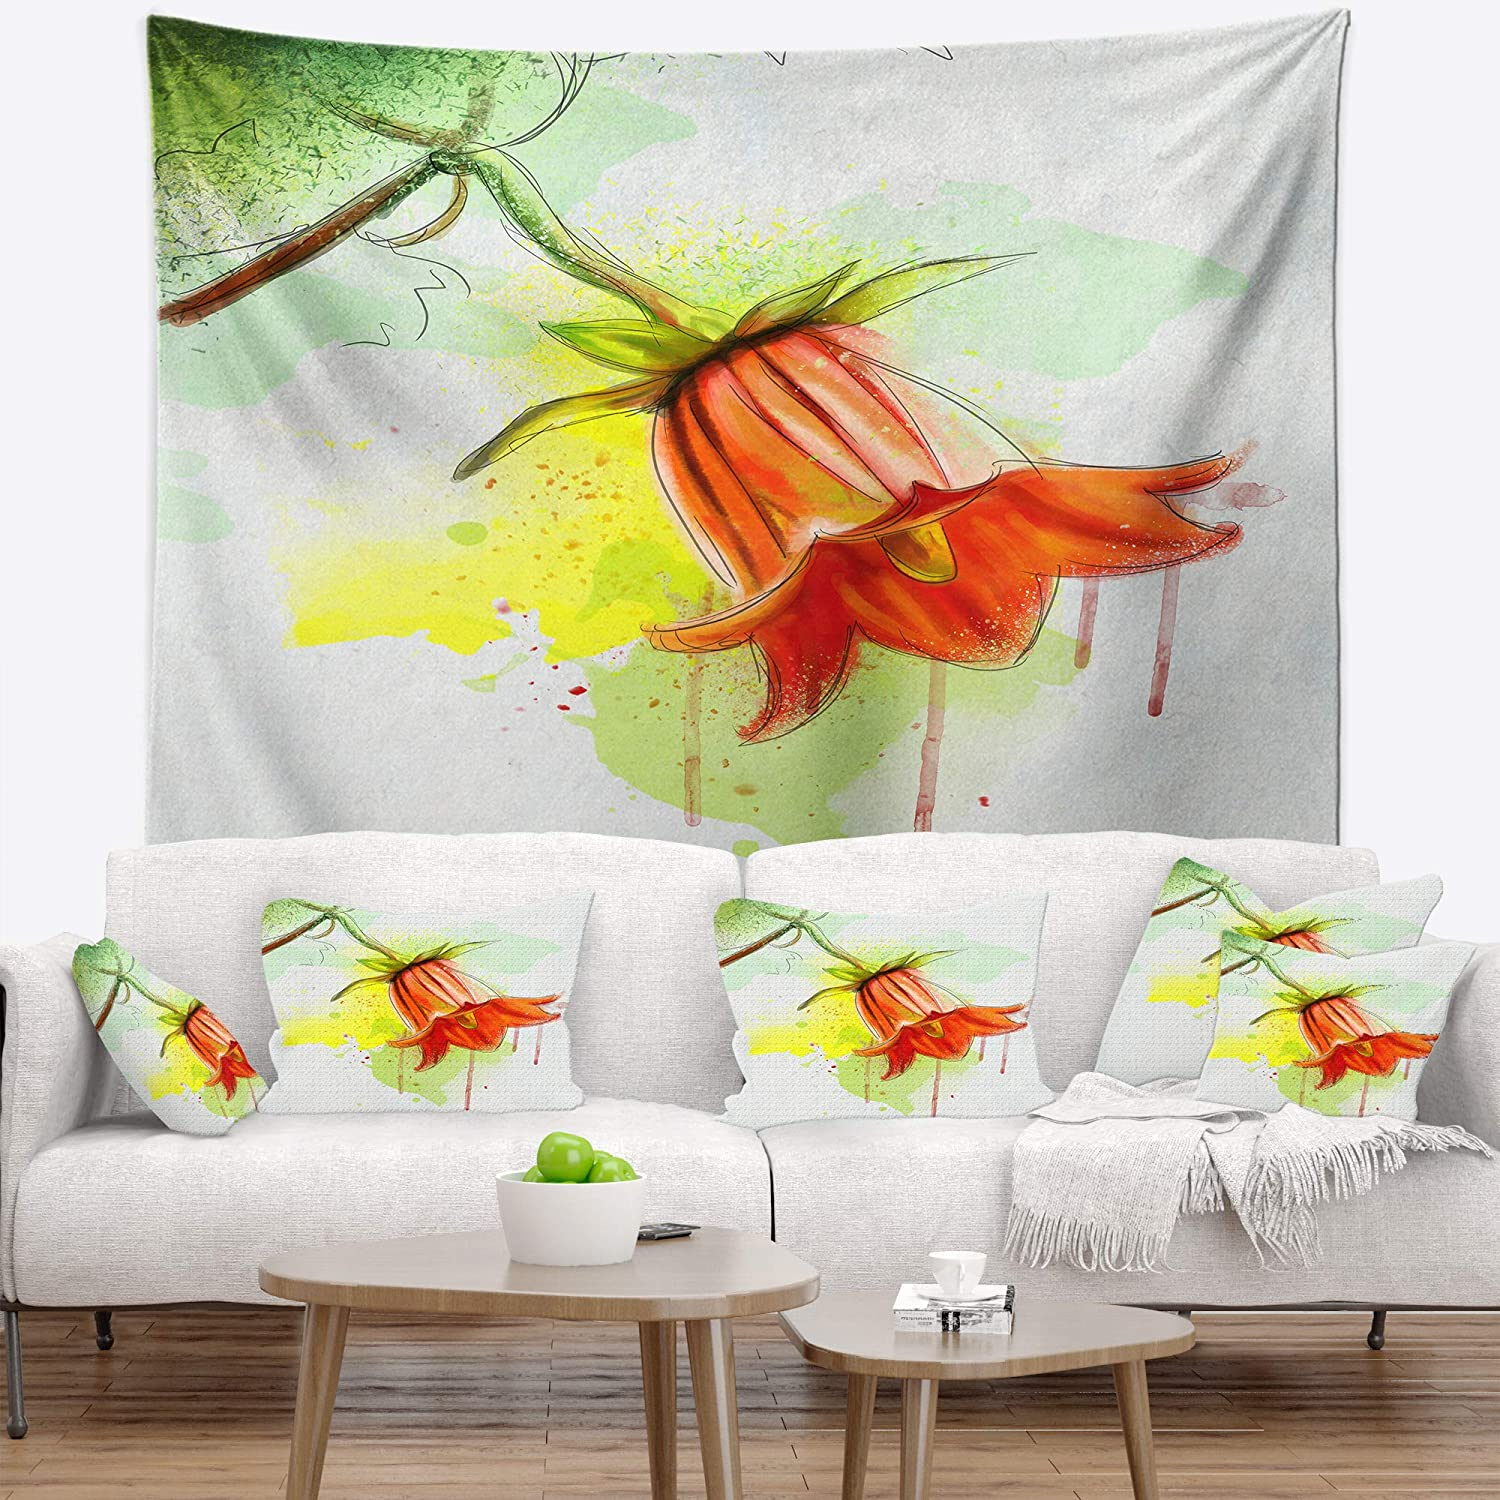 Designart TAP13501-32-39 ' Red Bellflower Sketch Watercolor' Floral Blanket Décor Art for Home and Office Wall Tapestry Medium: 32 in. x 39 in. Created On Lightweight Polyester Fabric